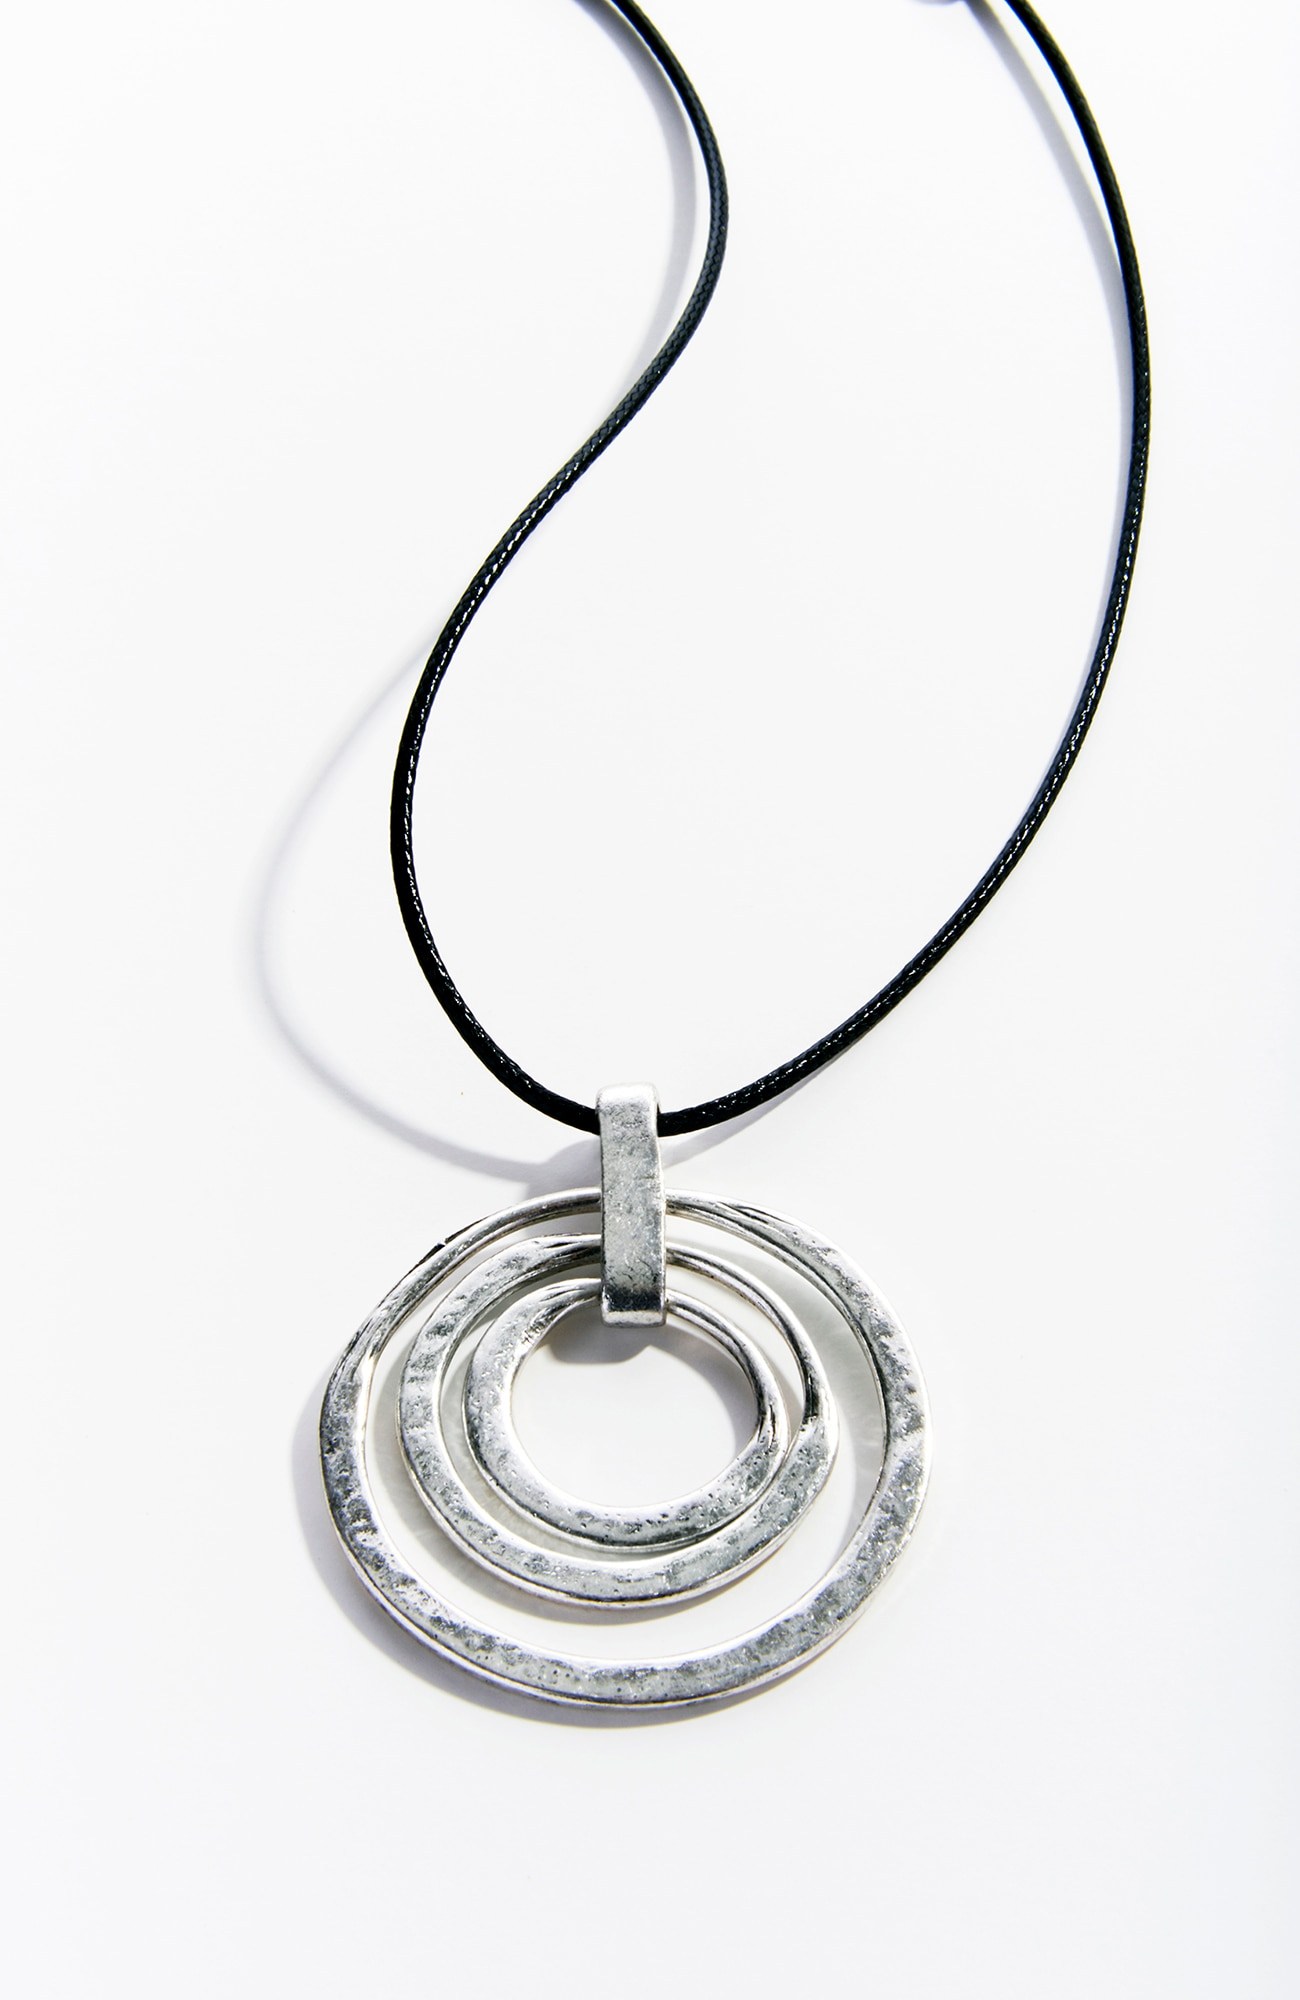 Pure Jill sculpted rings pendant necklace